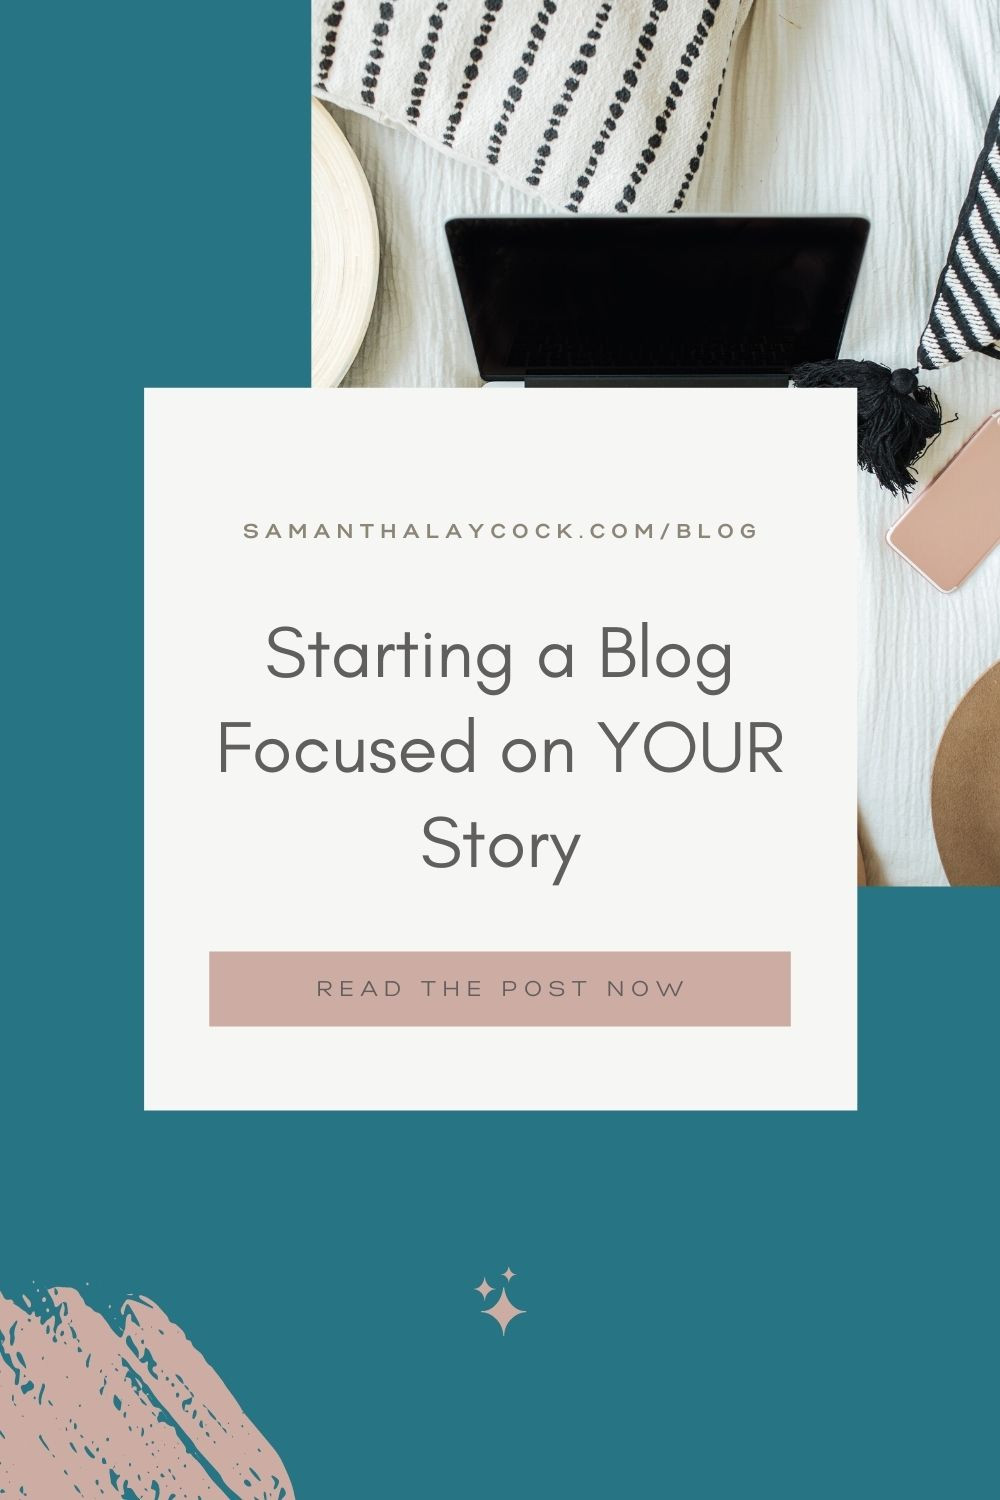 Starting a blog that is focused on your story is possible.